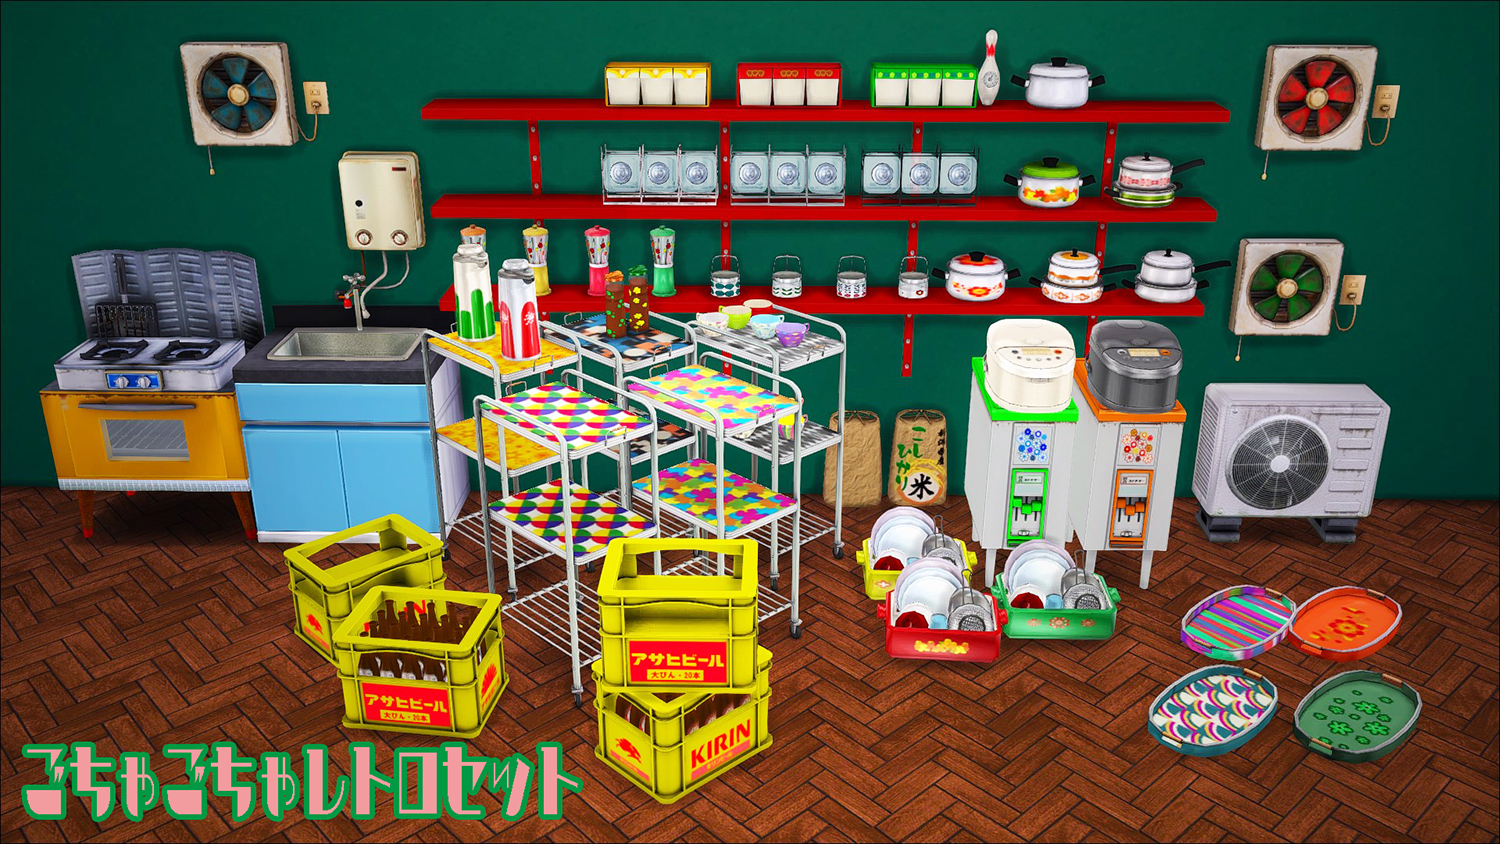 My Sims 4 Blog Retro Kitchen Appliances And Decor By Kimu412